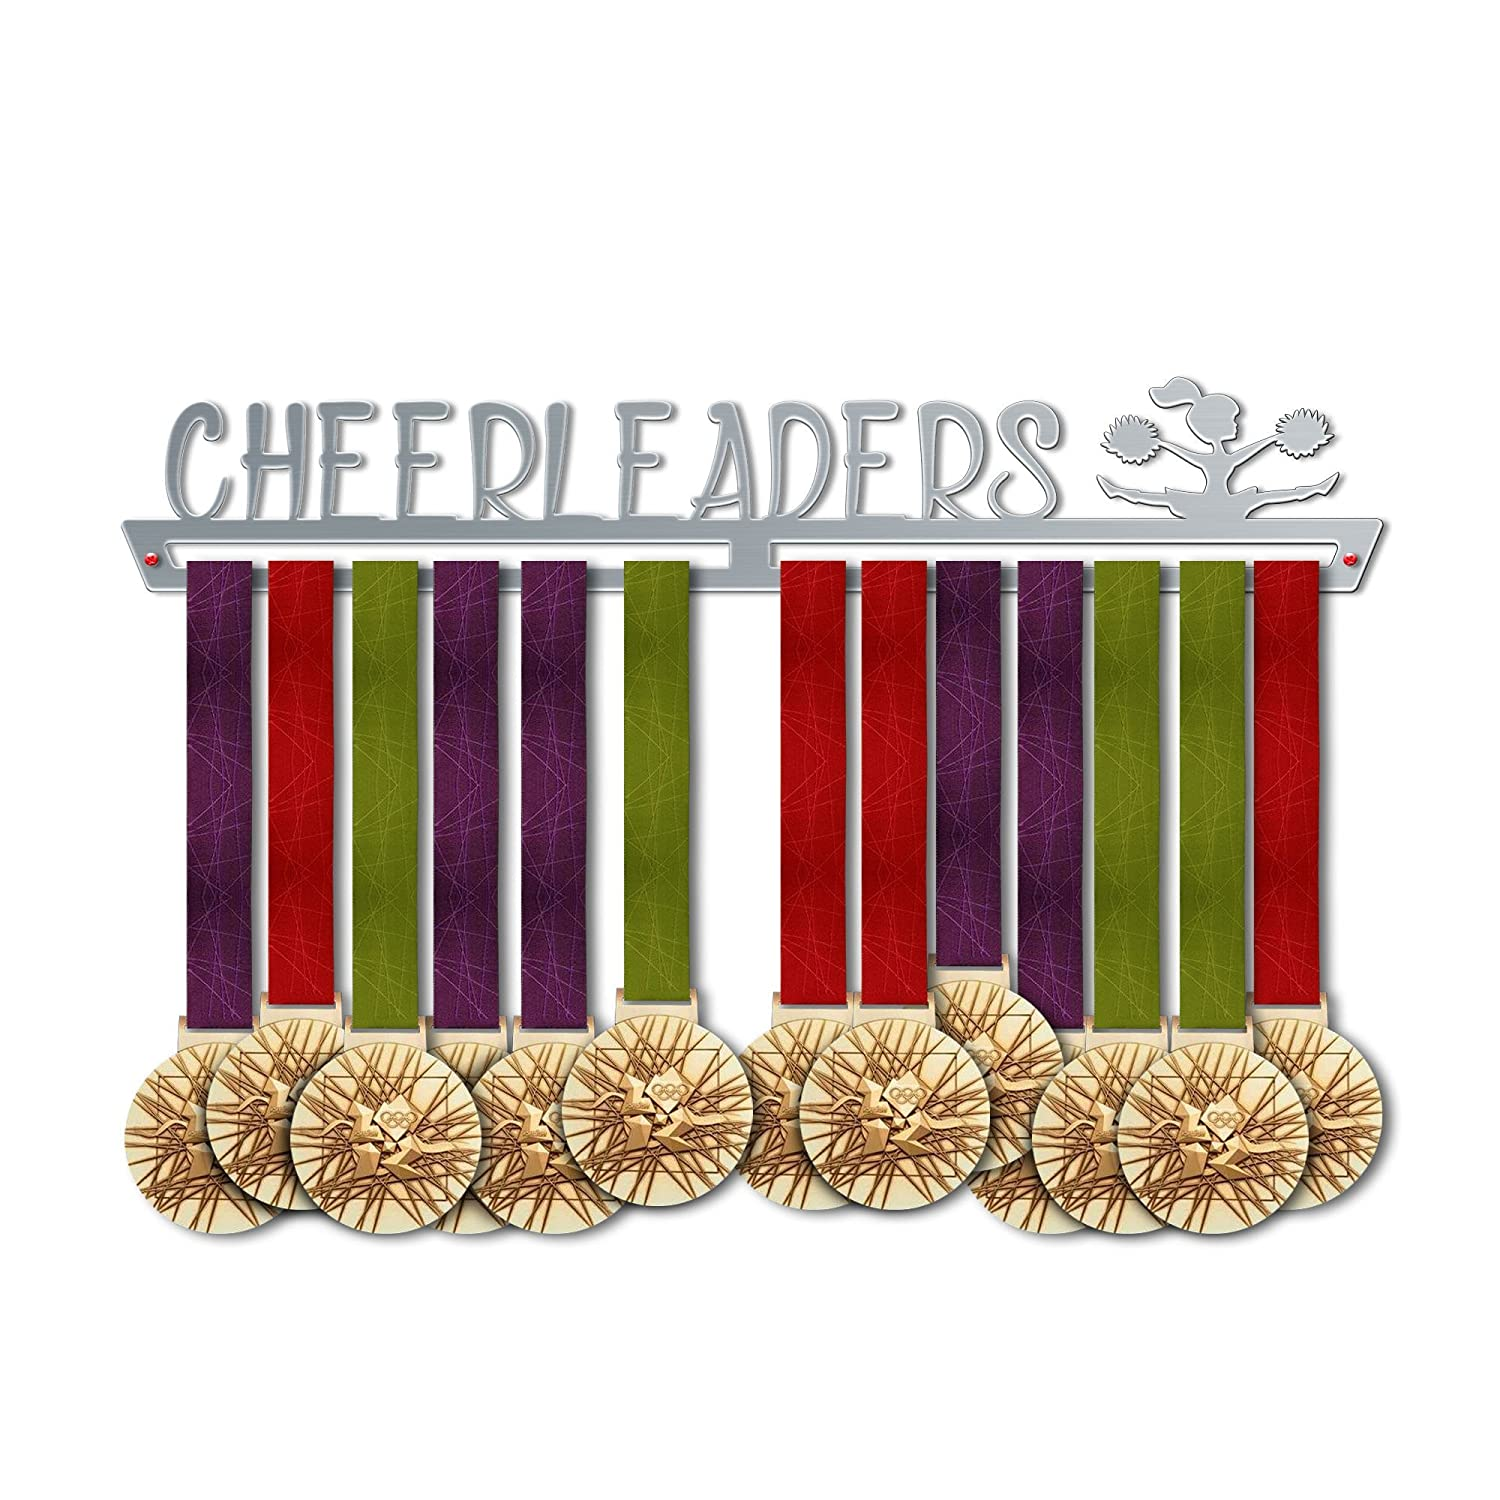 Cheerleaders Medal Hanger Display | Sports Medal Hangers | Stainless Steel Medal Display | by VictoryHangers - The Best Gift for Champions !